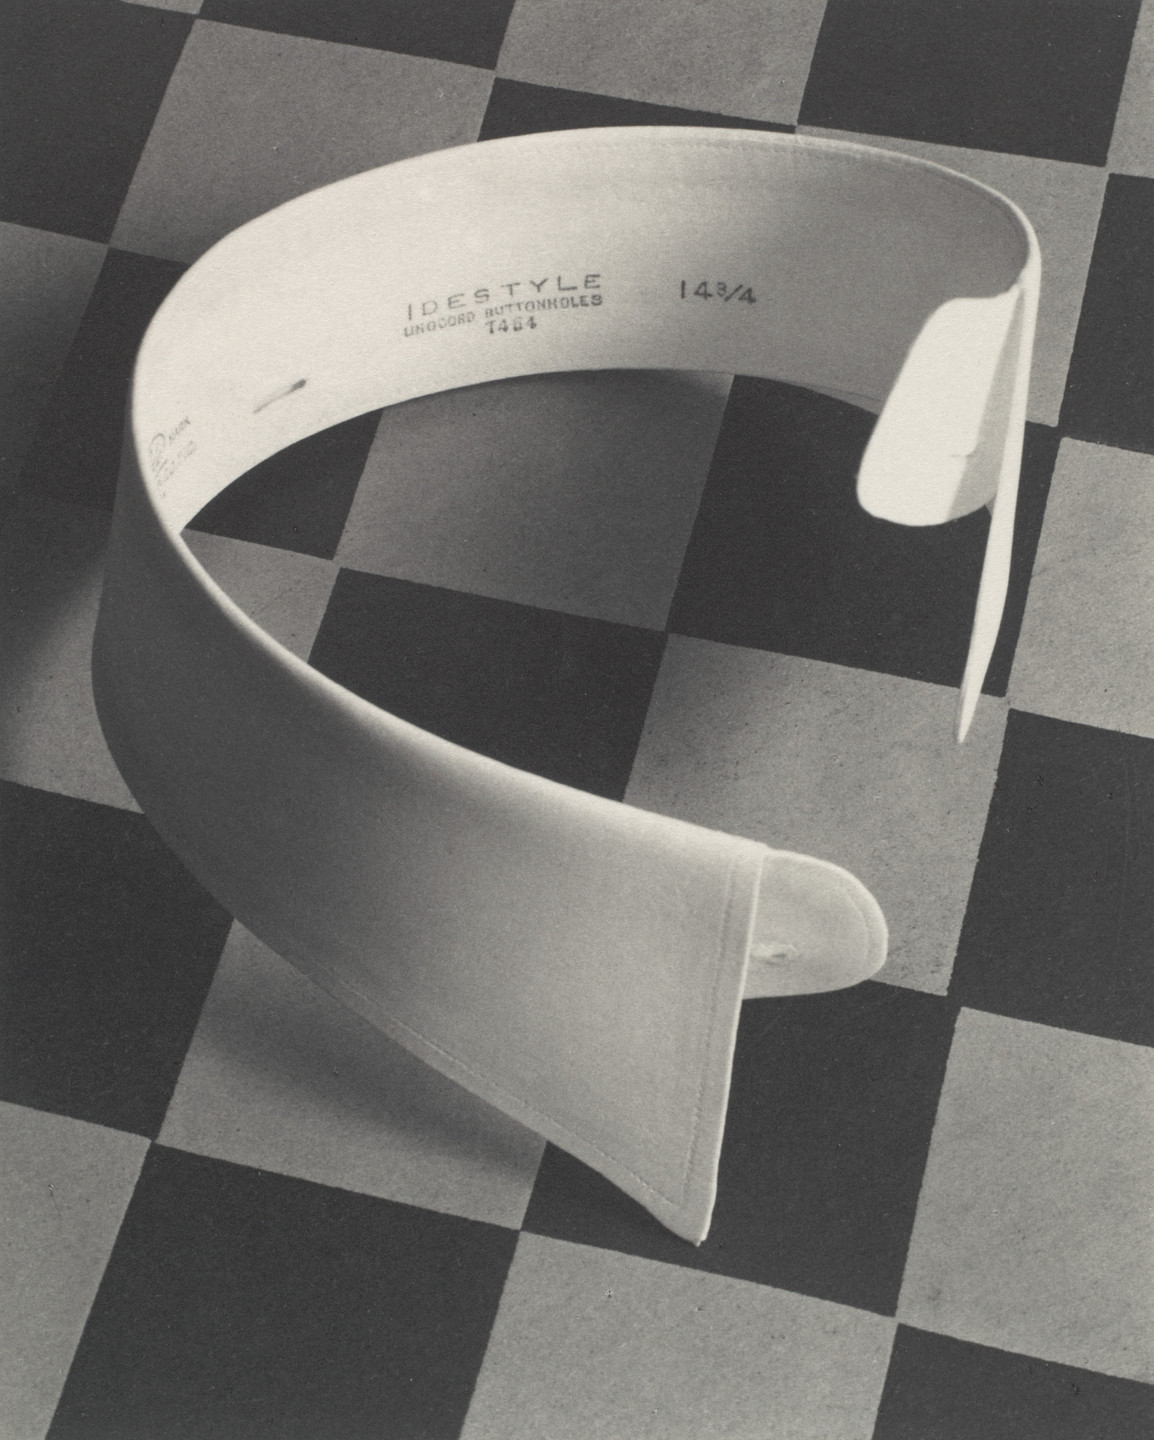 Paul Outerbridge. Ide Collar. 1922